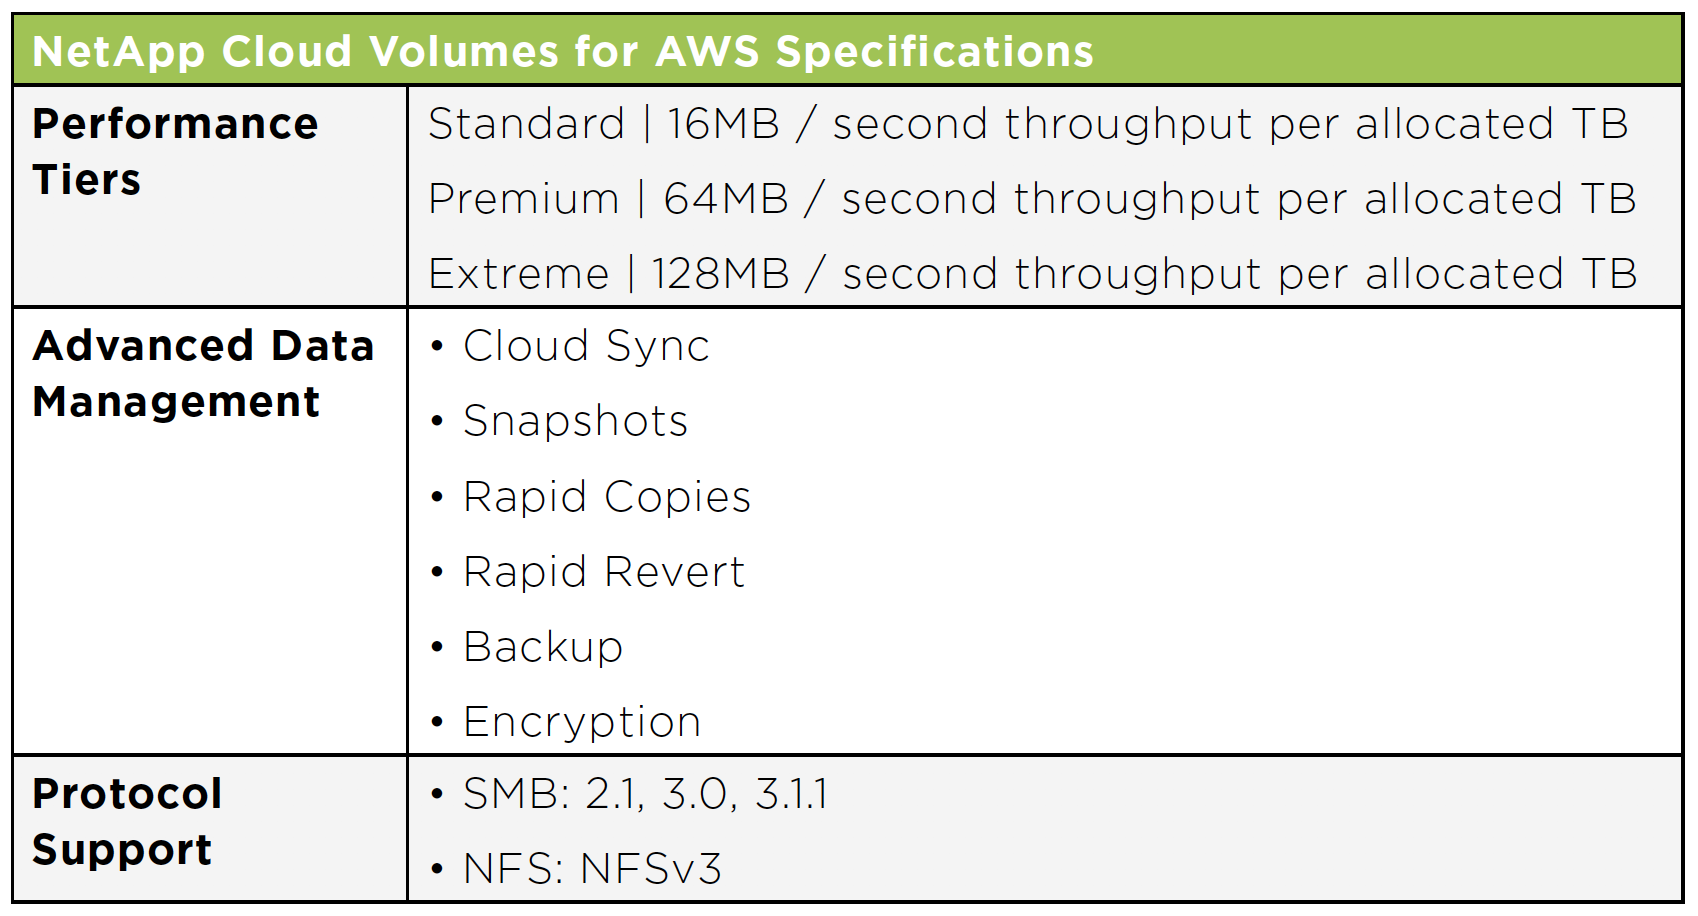 NetApp Cloud Volumes for AWS Specifications